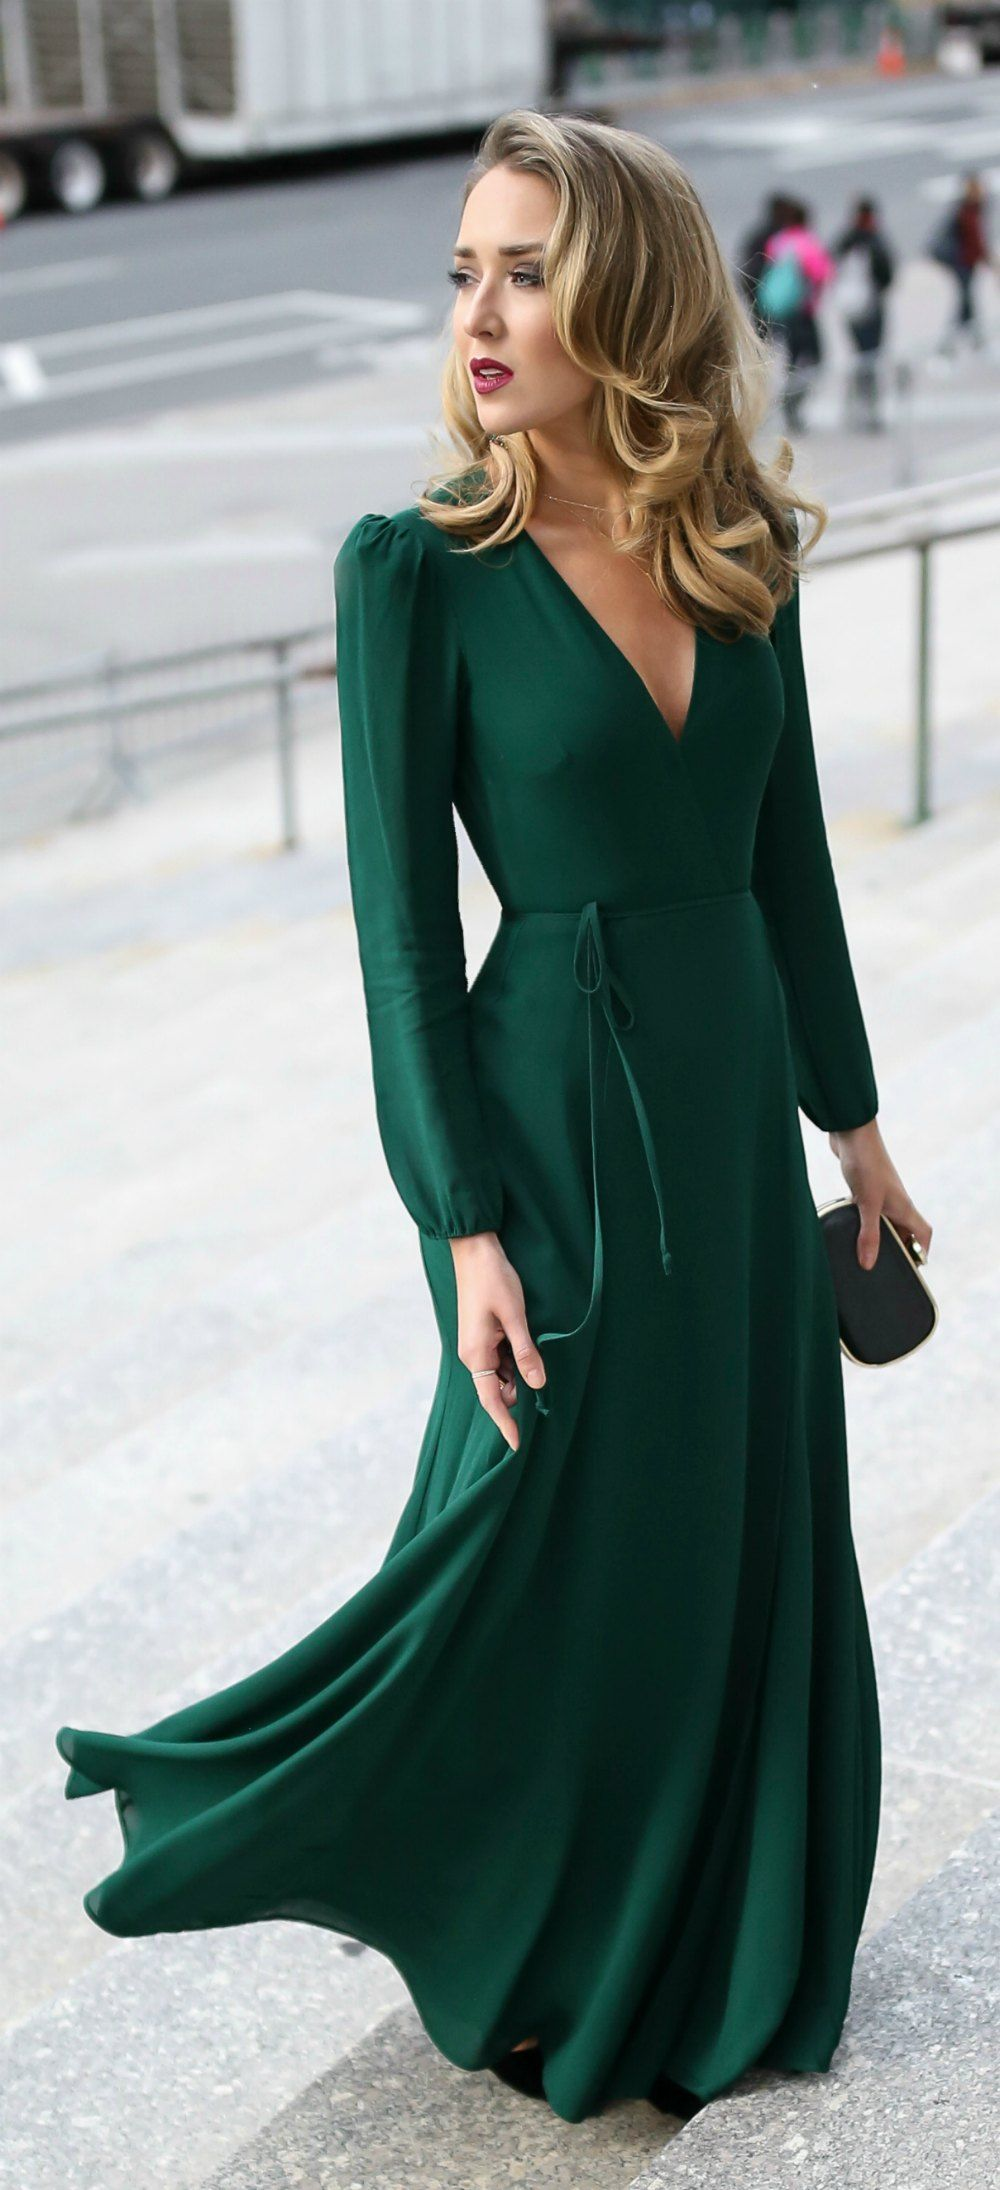 Emerald green dress for wedding   DRESSES IN  DAYS Black Tie Wedding Guest  Emerald green long